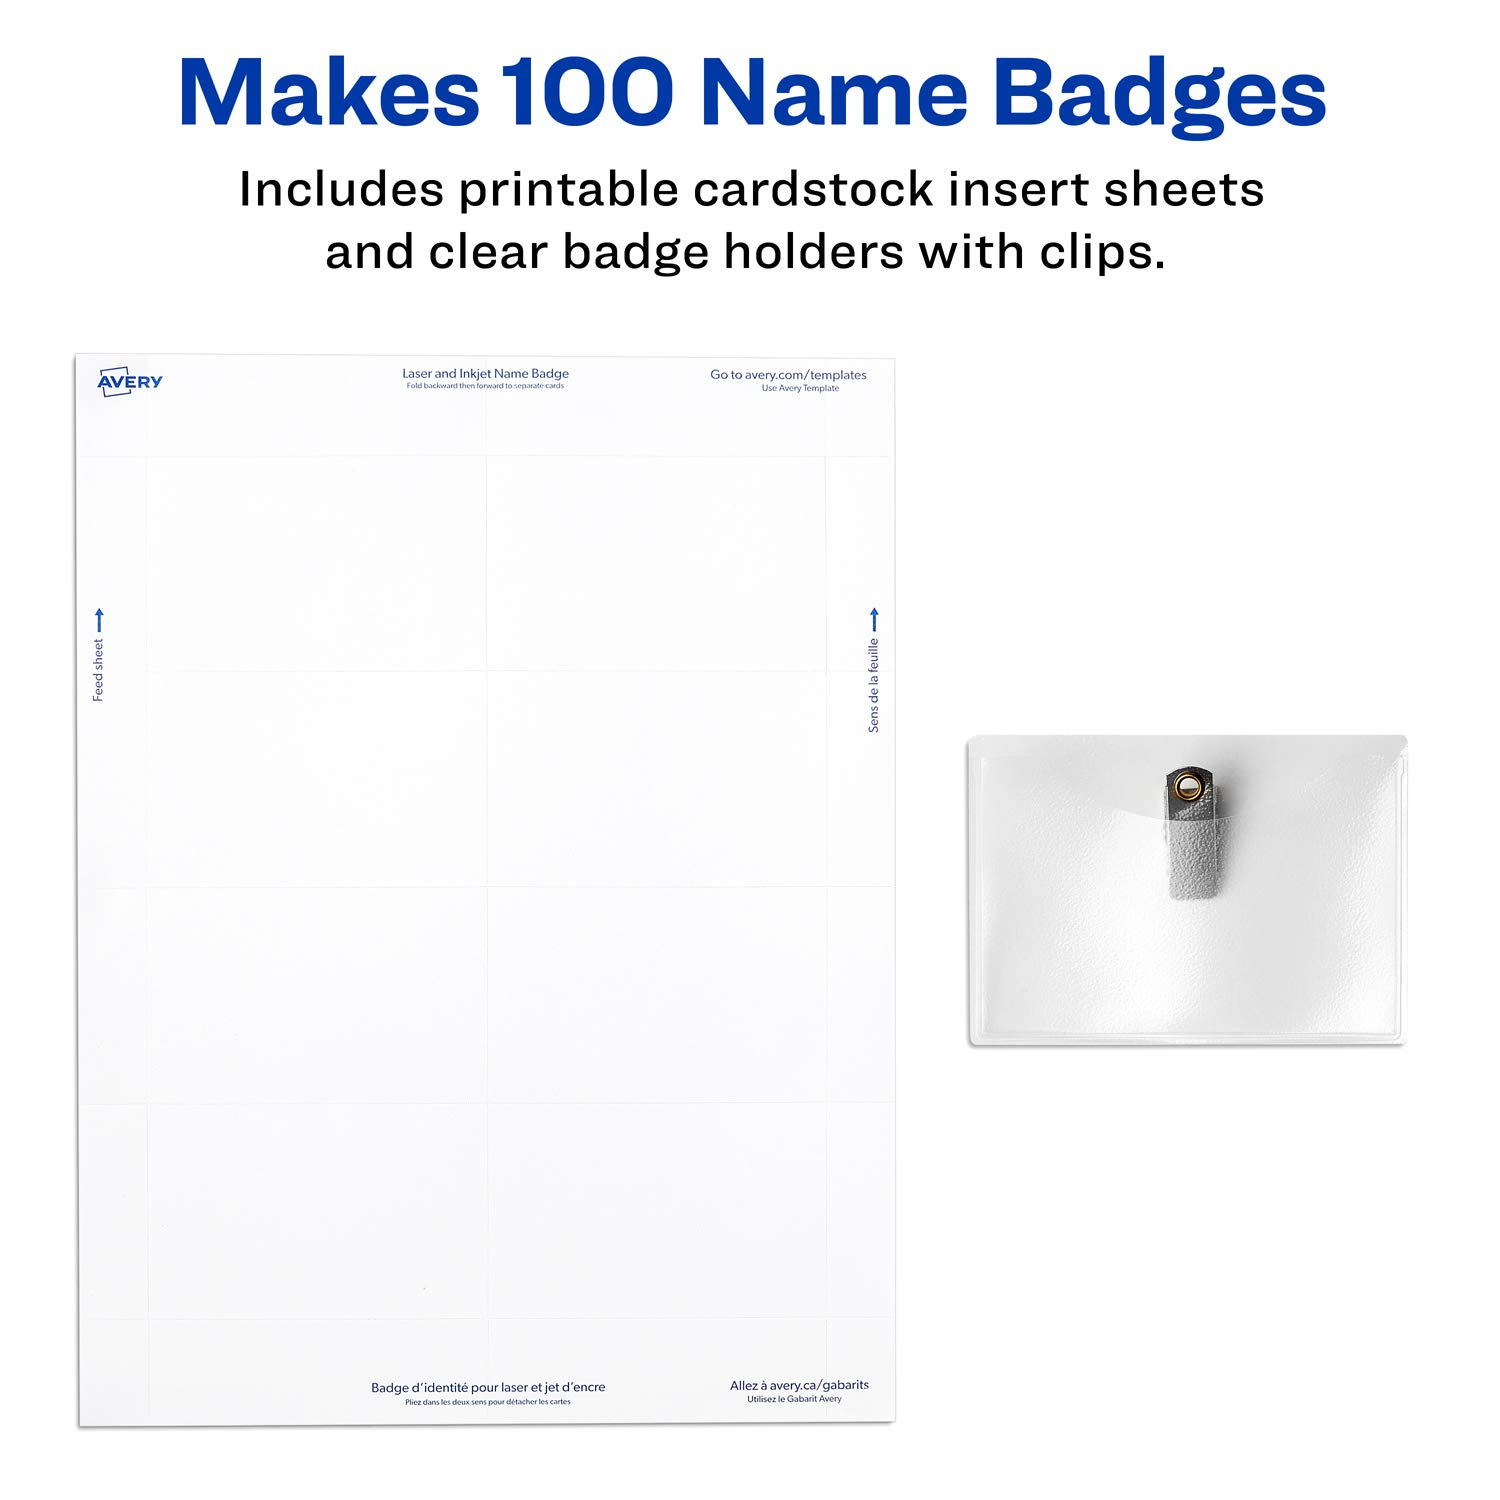 Amazon avery clip name badges print or write 2 14 x 3 12 amazon avery clip name badges print or write 2 14 x 3 12 100 inserts badge holders with clips 74461 badge inserts office products maxwellsz